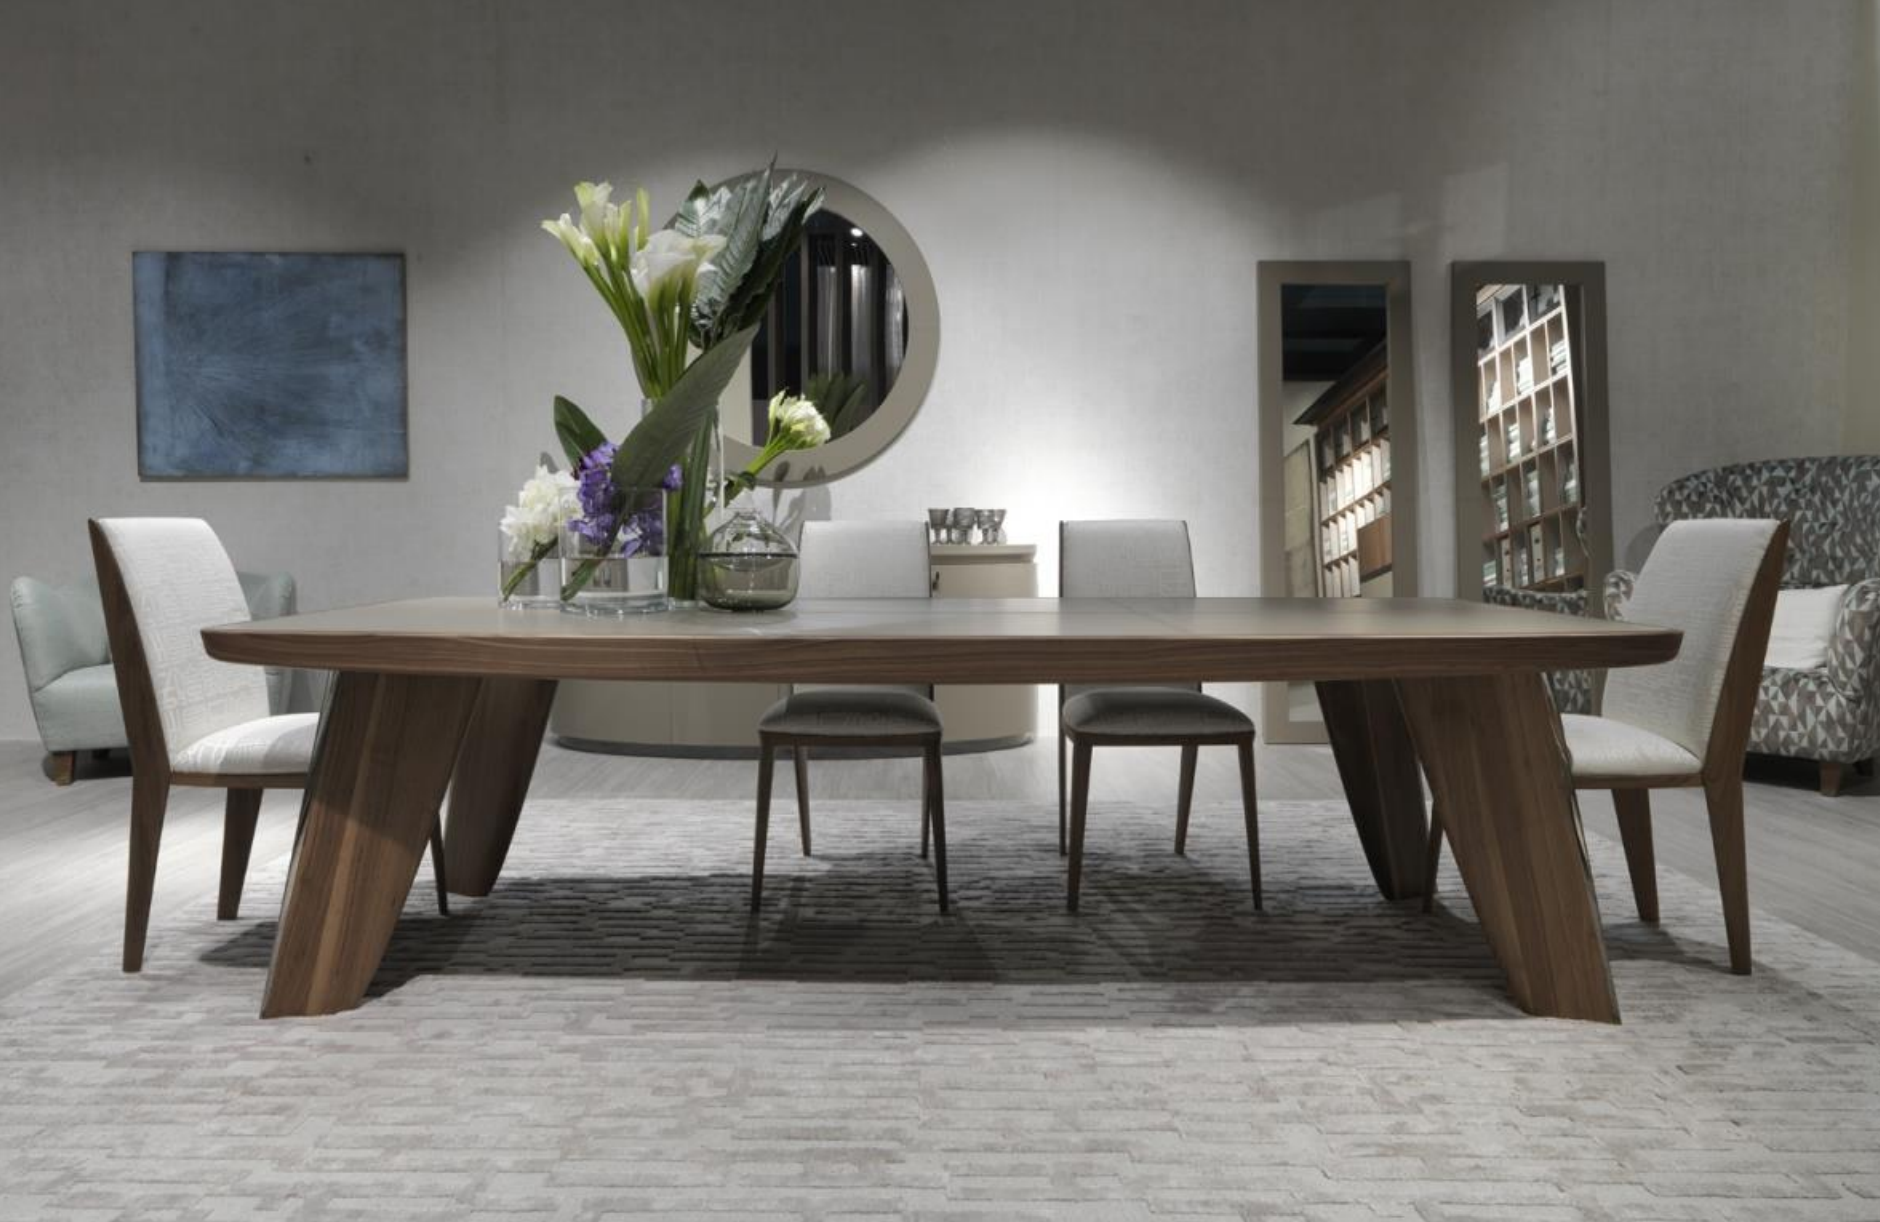 Annibale Colombo dining table from Nautica collection - Masha Shapiro Agency UK.png